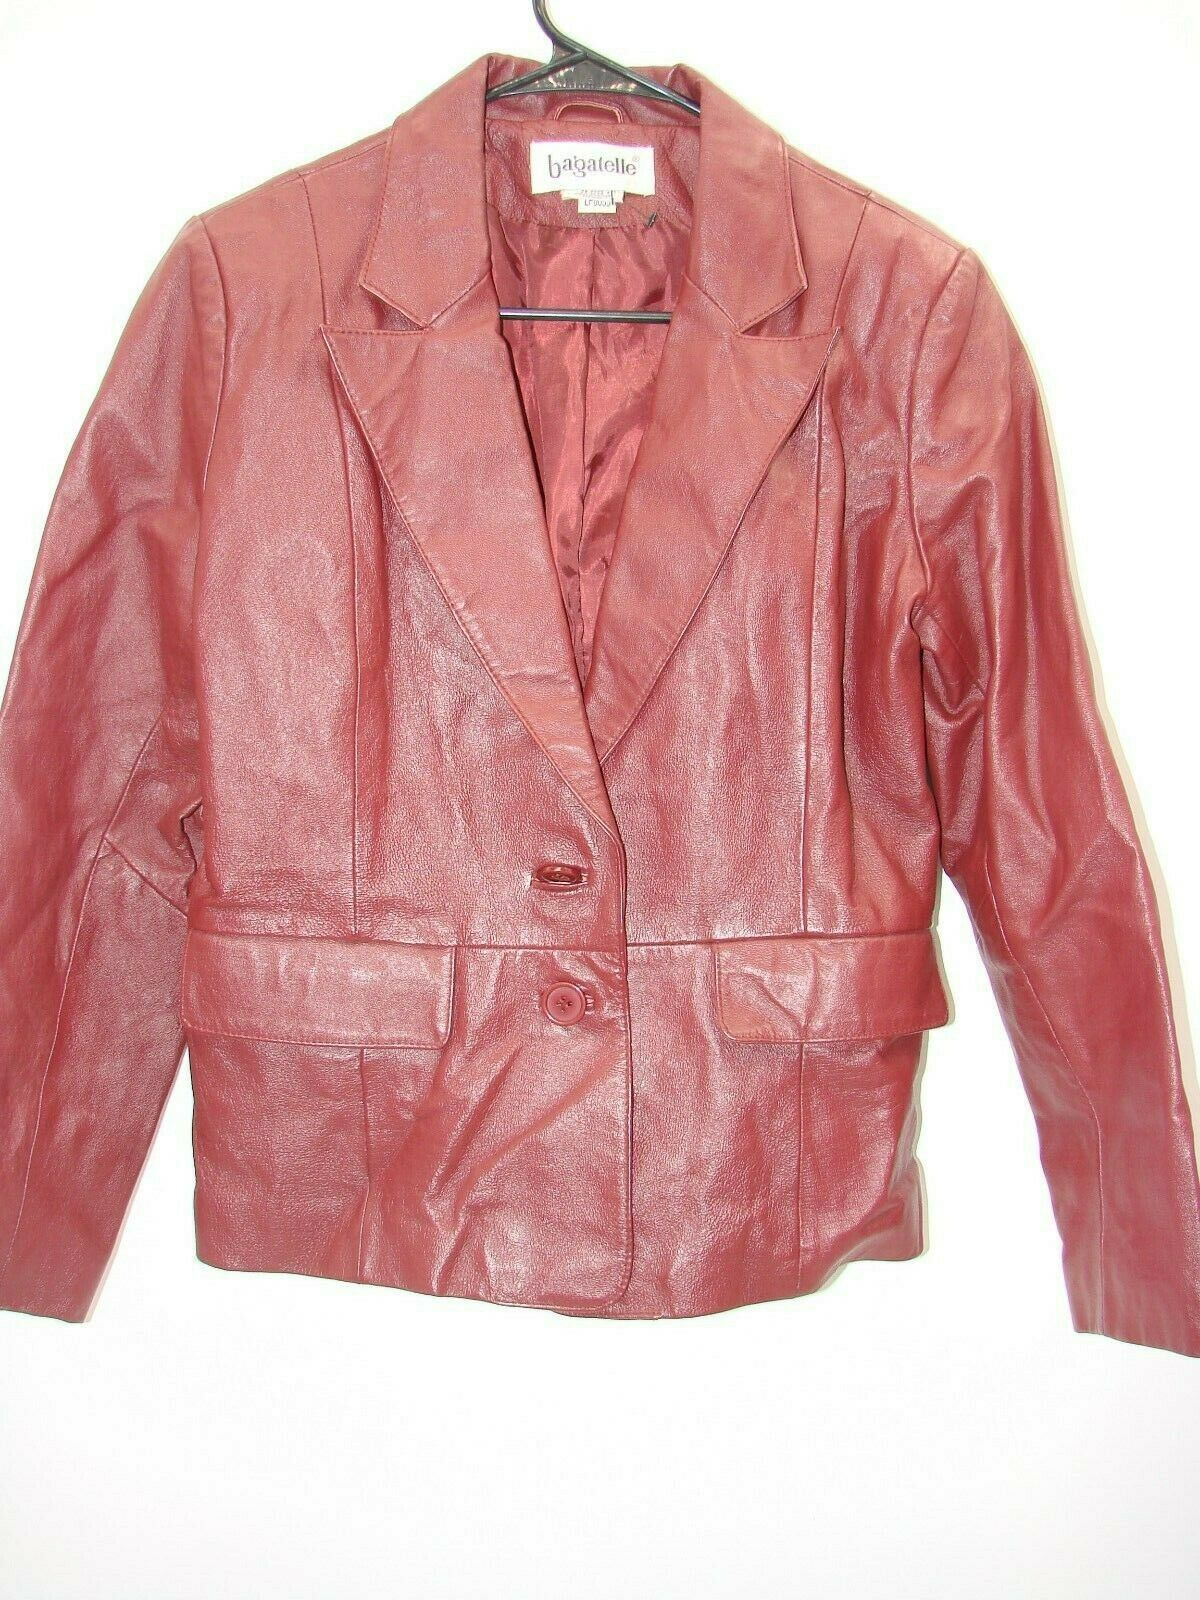 Womens Bagatelle Red Maroon 100% Leather Jacket Size 4 Petite Excellent 24-2323-